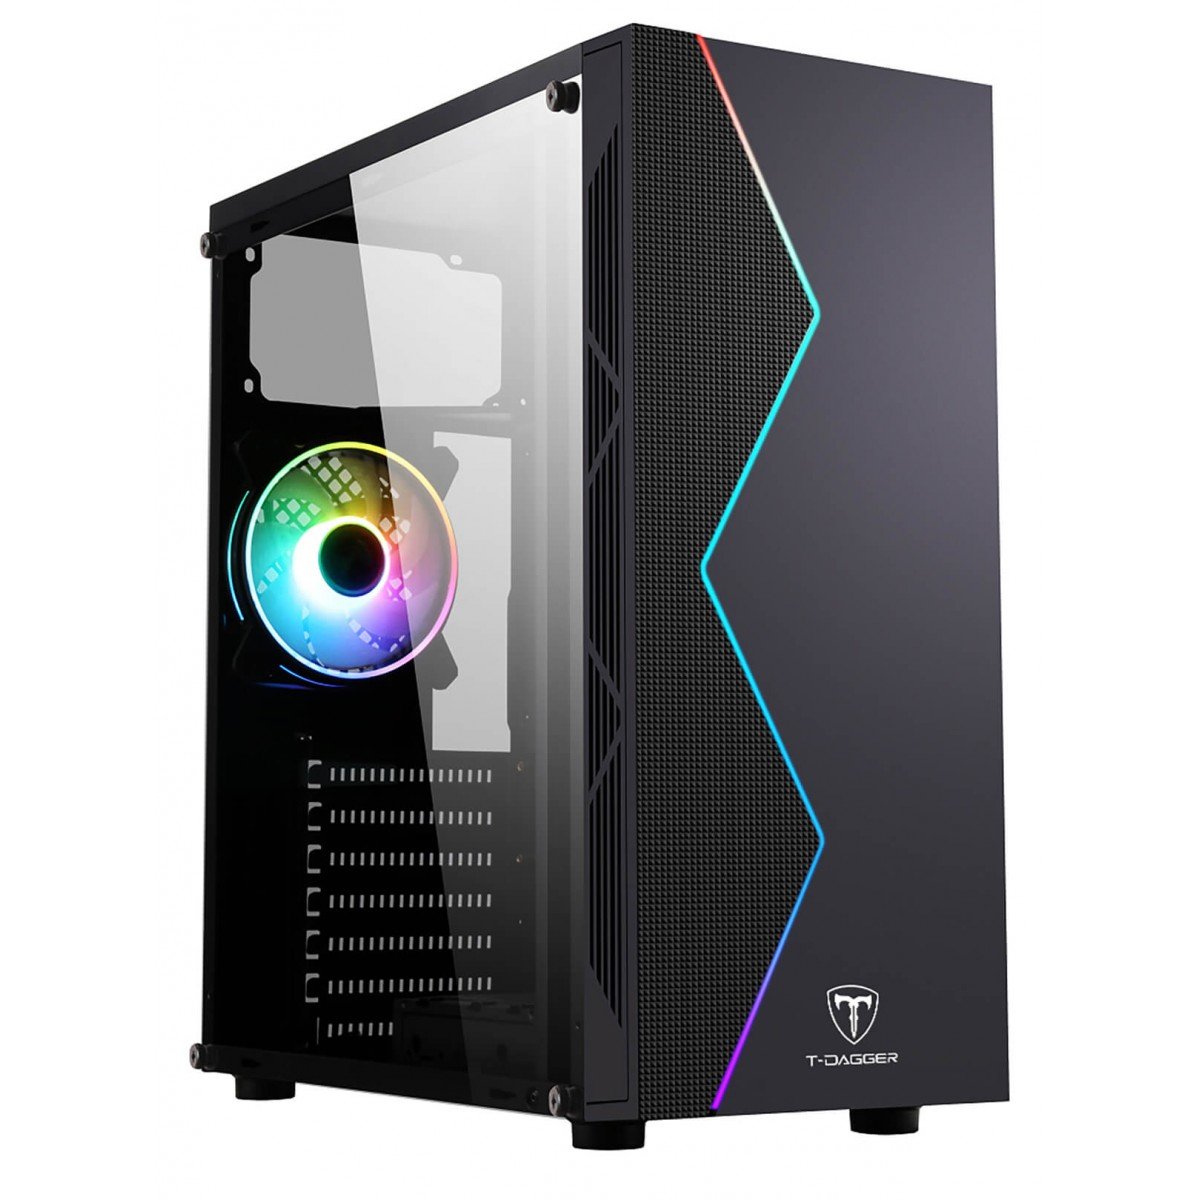 Computador Gamer, Intel Core i3-9100F, Placa de Vídeo GTX-1050TI 4GB, 8GB DDR4, SSD 120GB